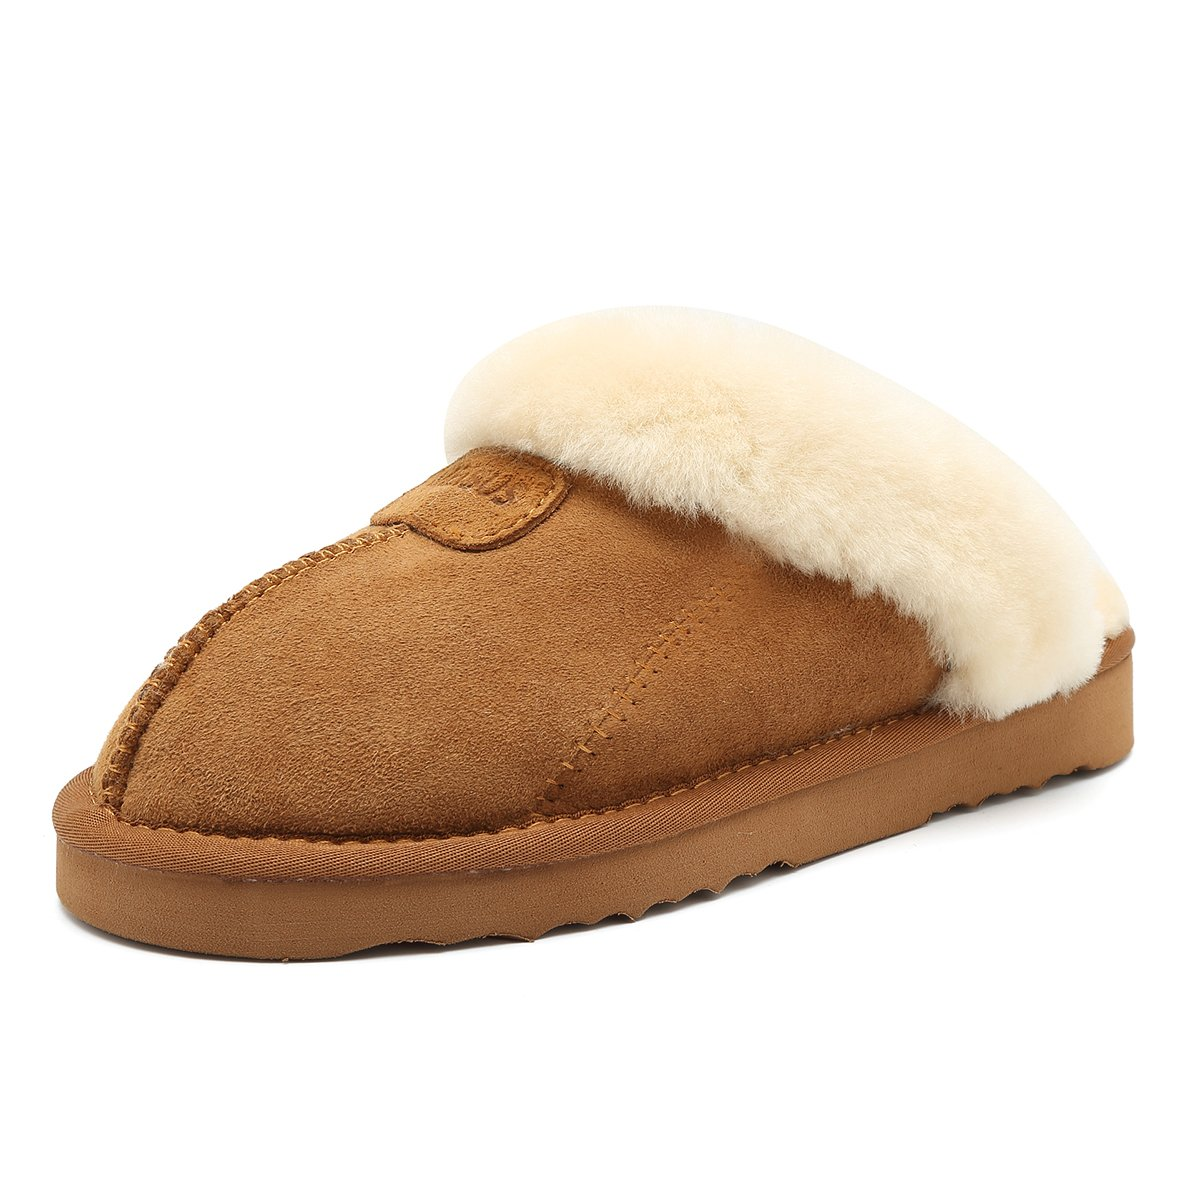 MEISUS Slipper for Women with The Integration of Wool and Sheepskin Suede Fluffy Slipper with EVA Skid Resistance,MT03-Chestnut-38